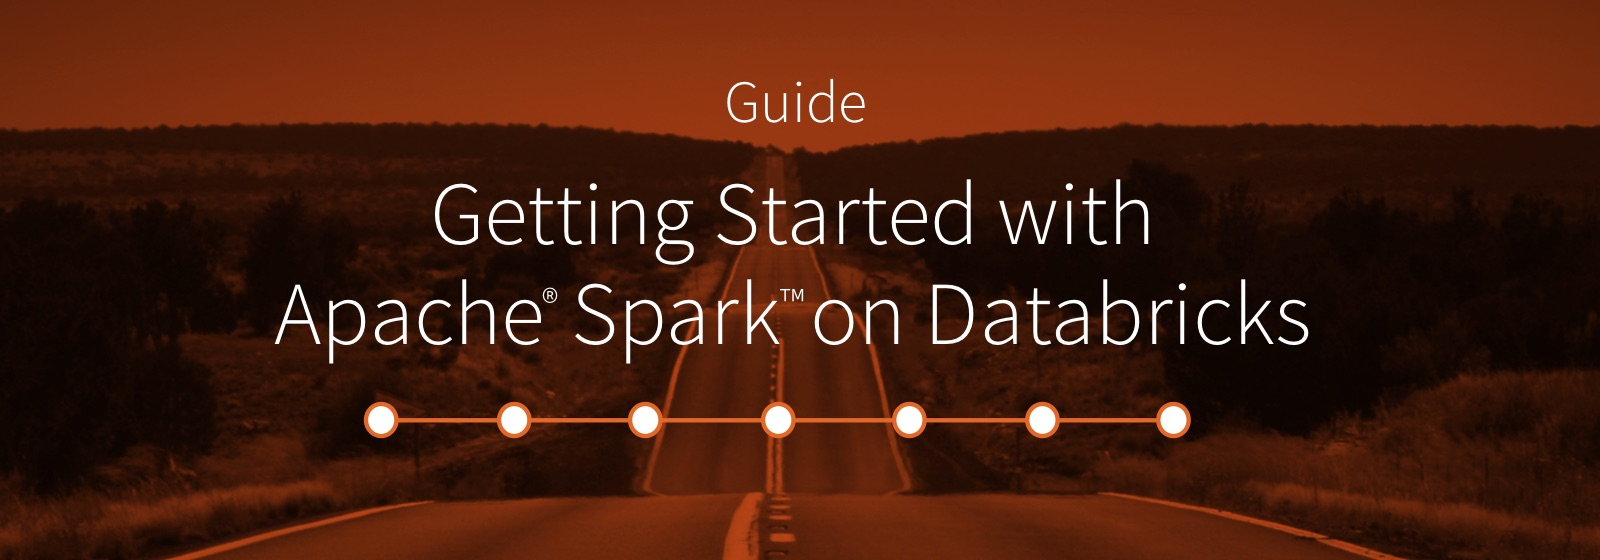 Visit the Getting Started with Apache Spark on Databricks Guide